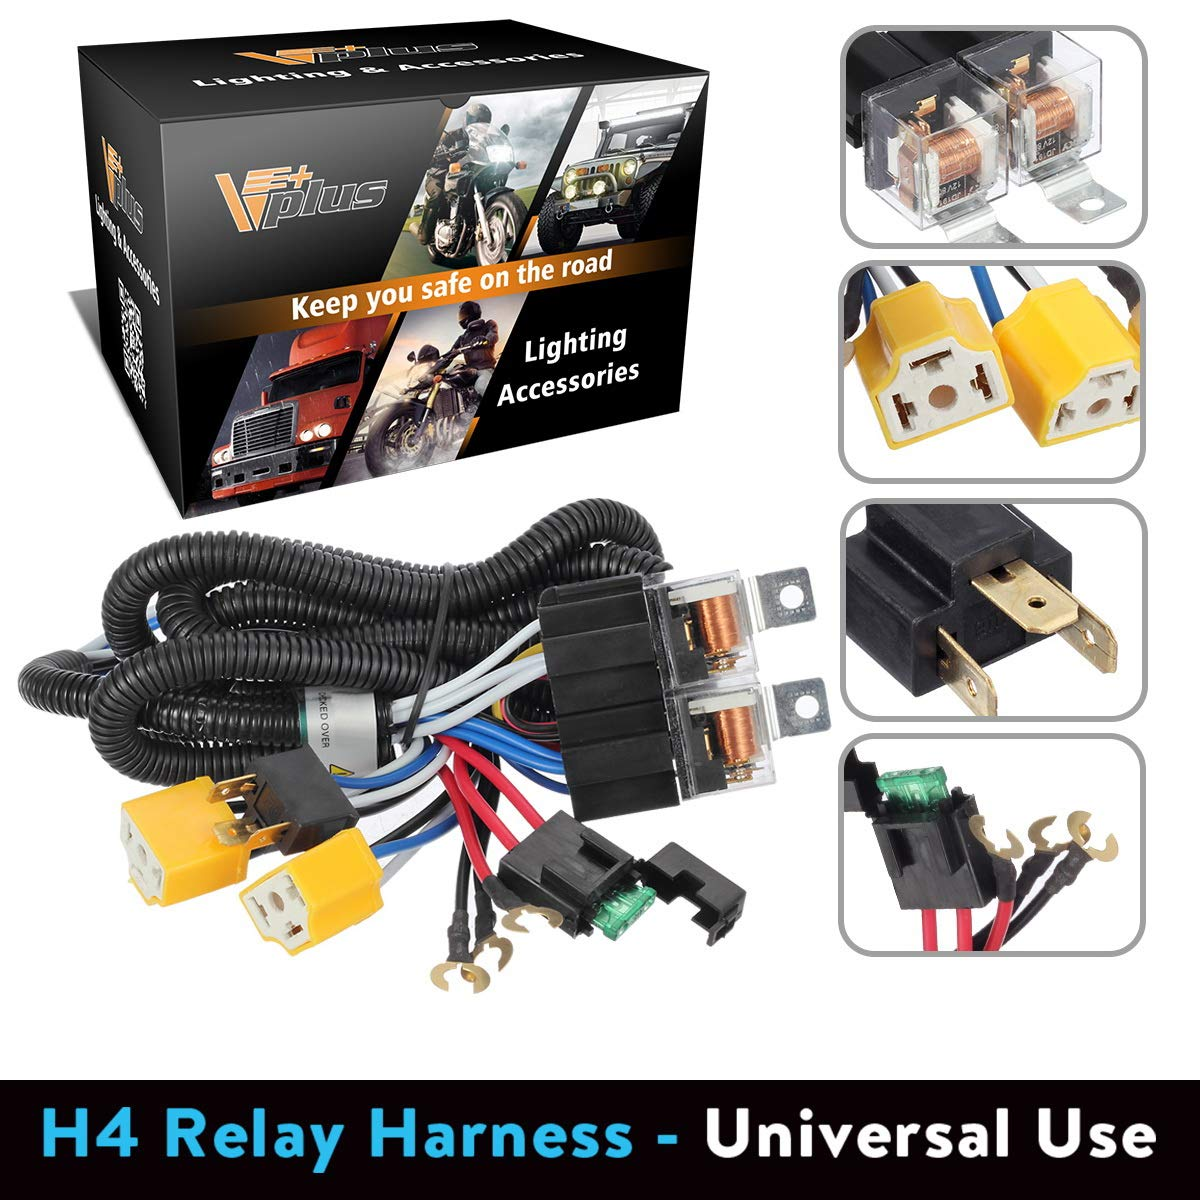 H4 Relay Harness